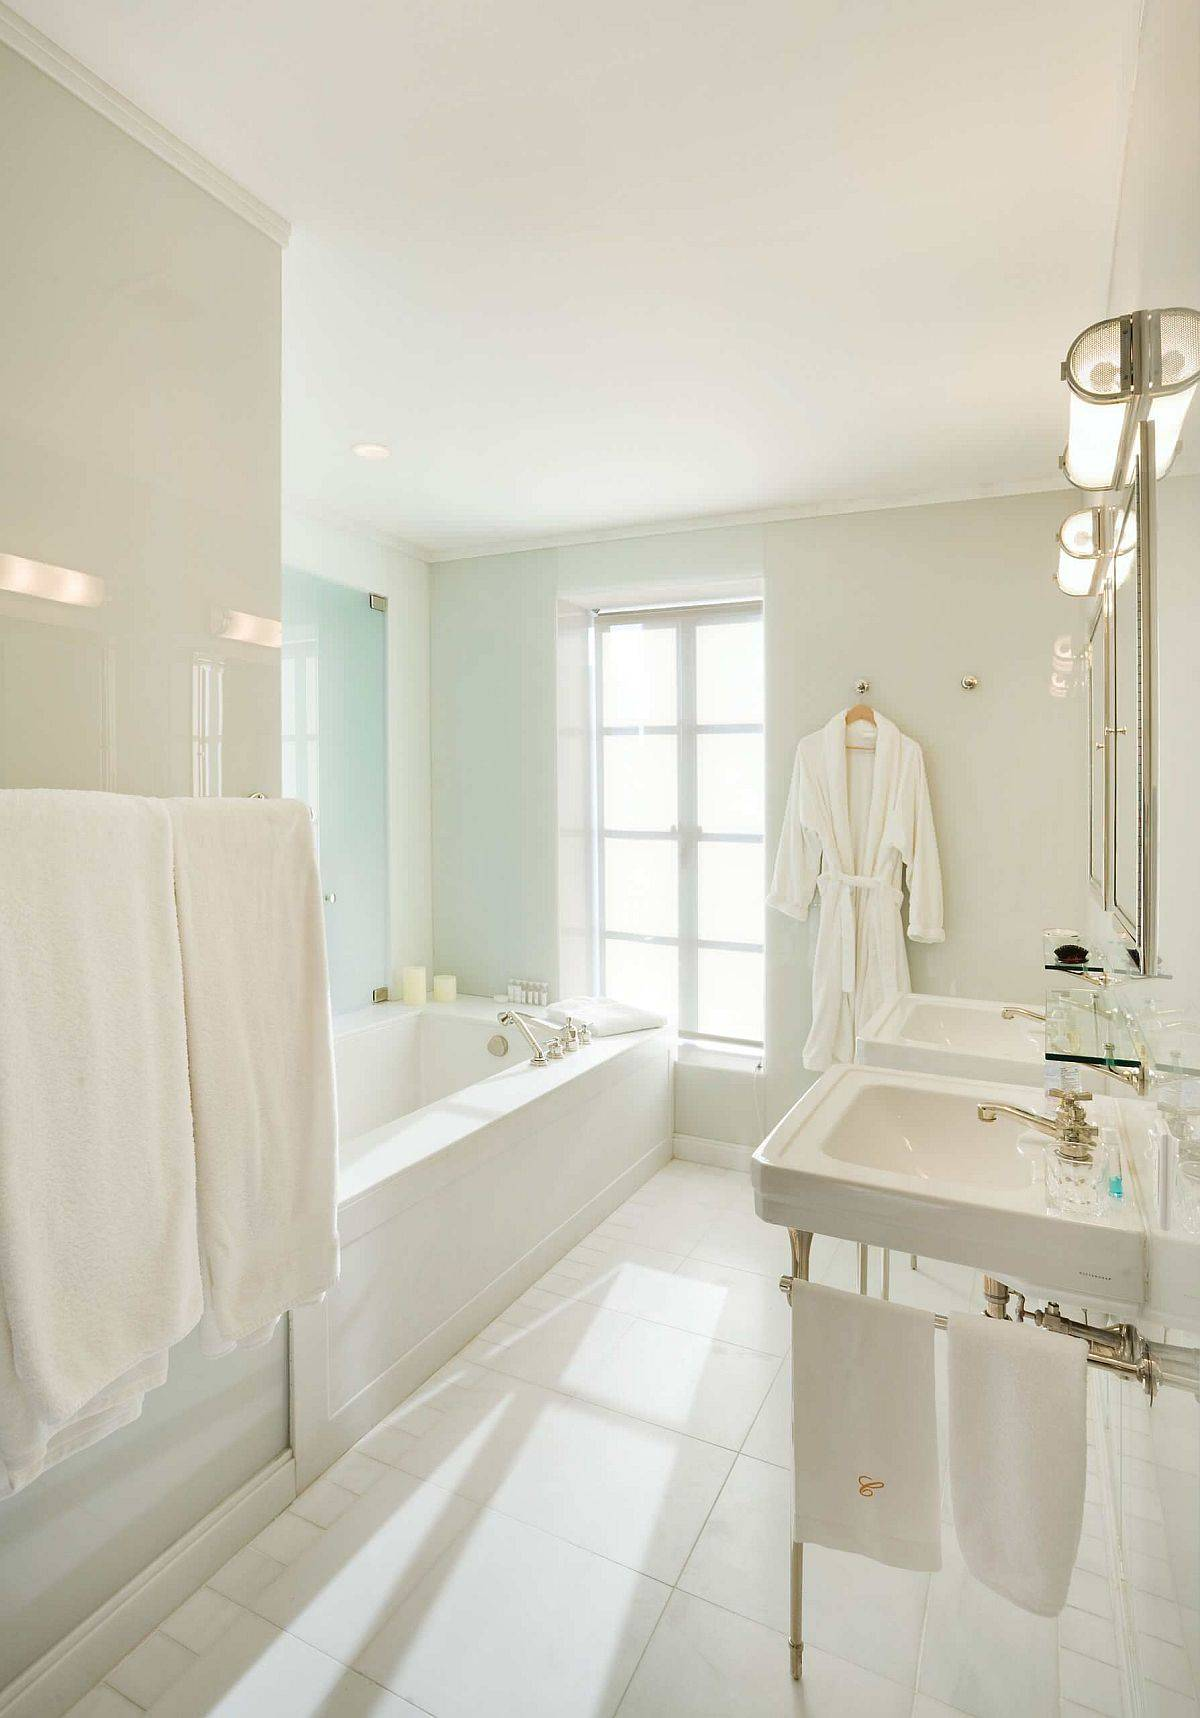 Luxurious-master-bathroom-in-white-with-a-touch-of-brown-thrown-into-the-mix-35626